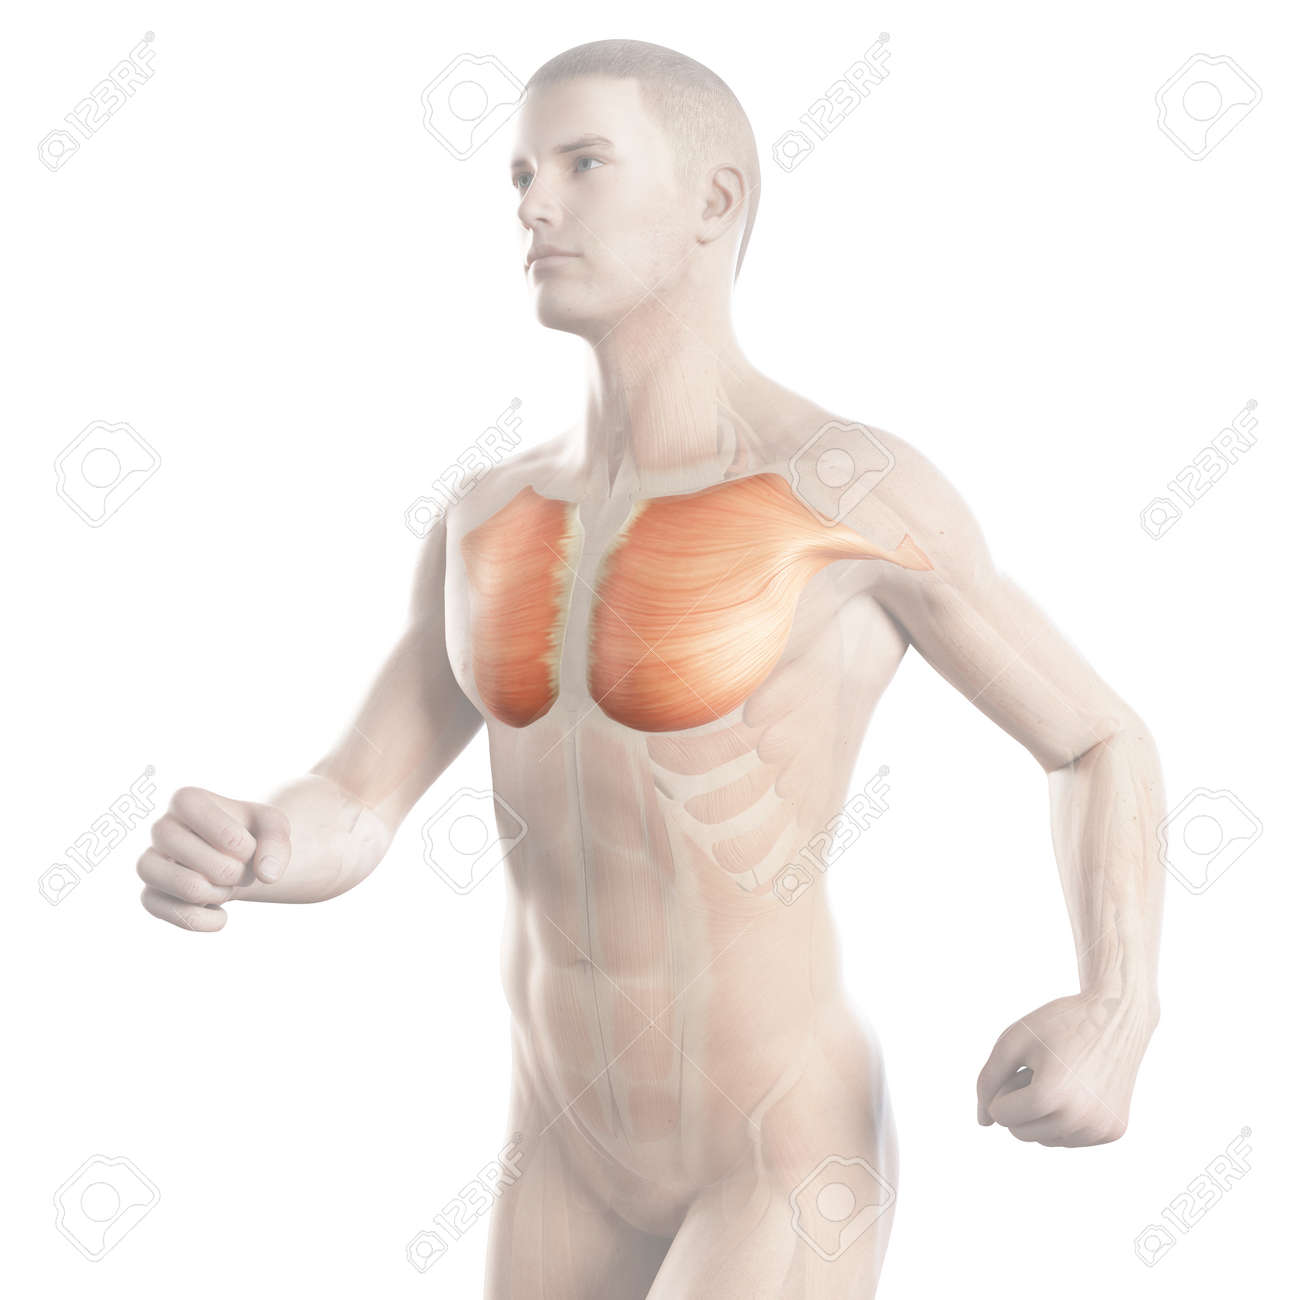 Illustration Showing The Breast Muscle Of A Jogger Stock Photo ...